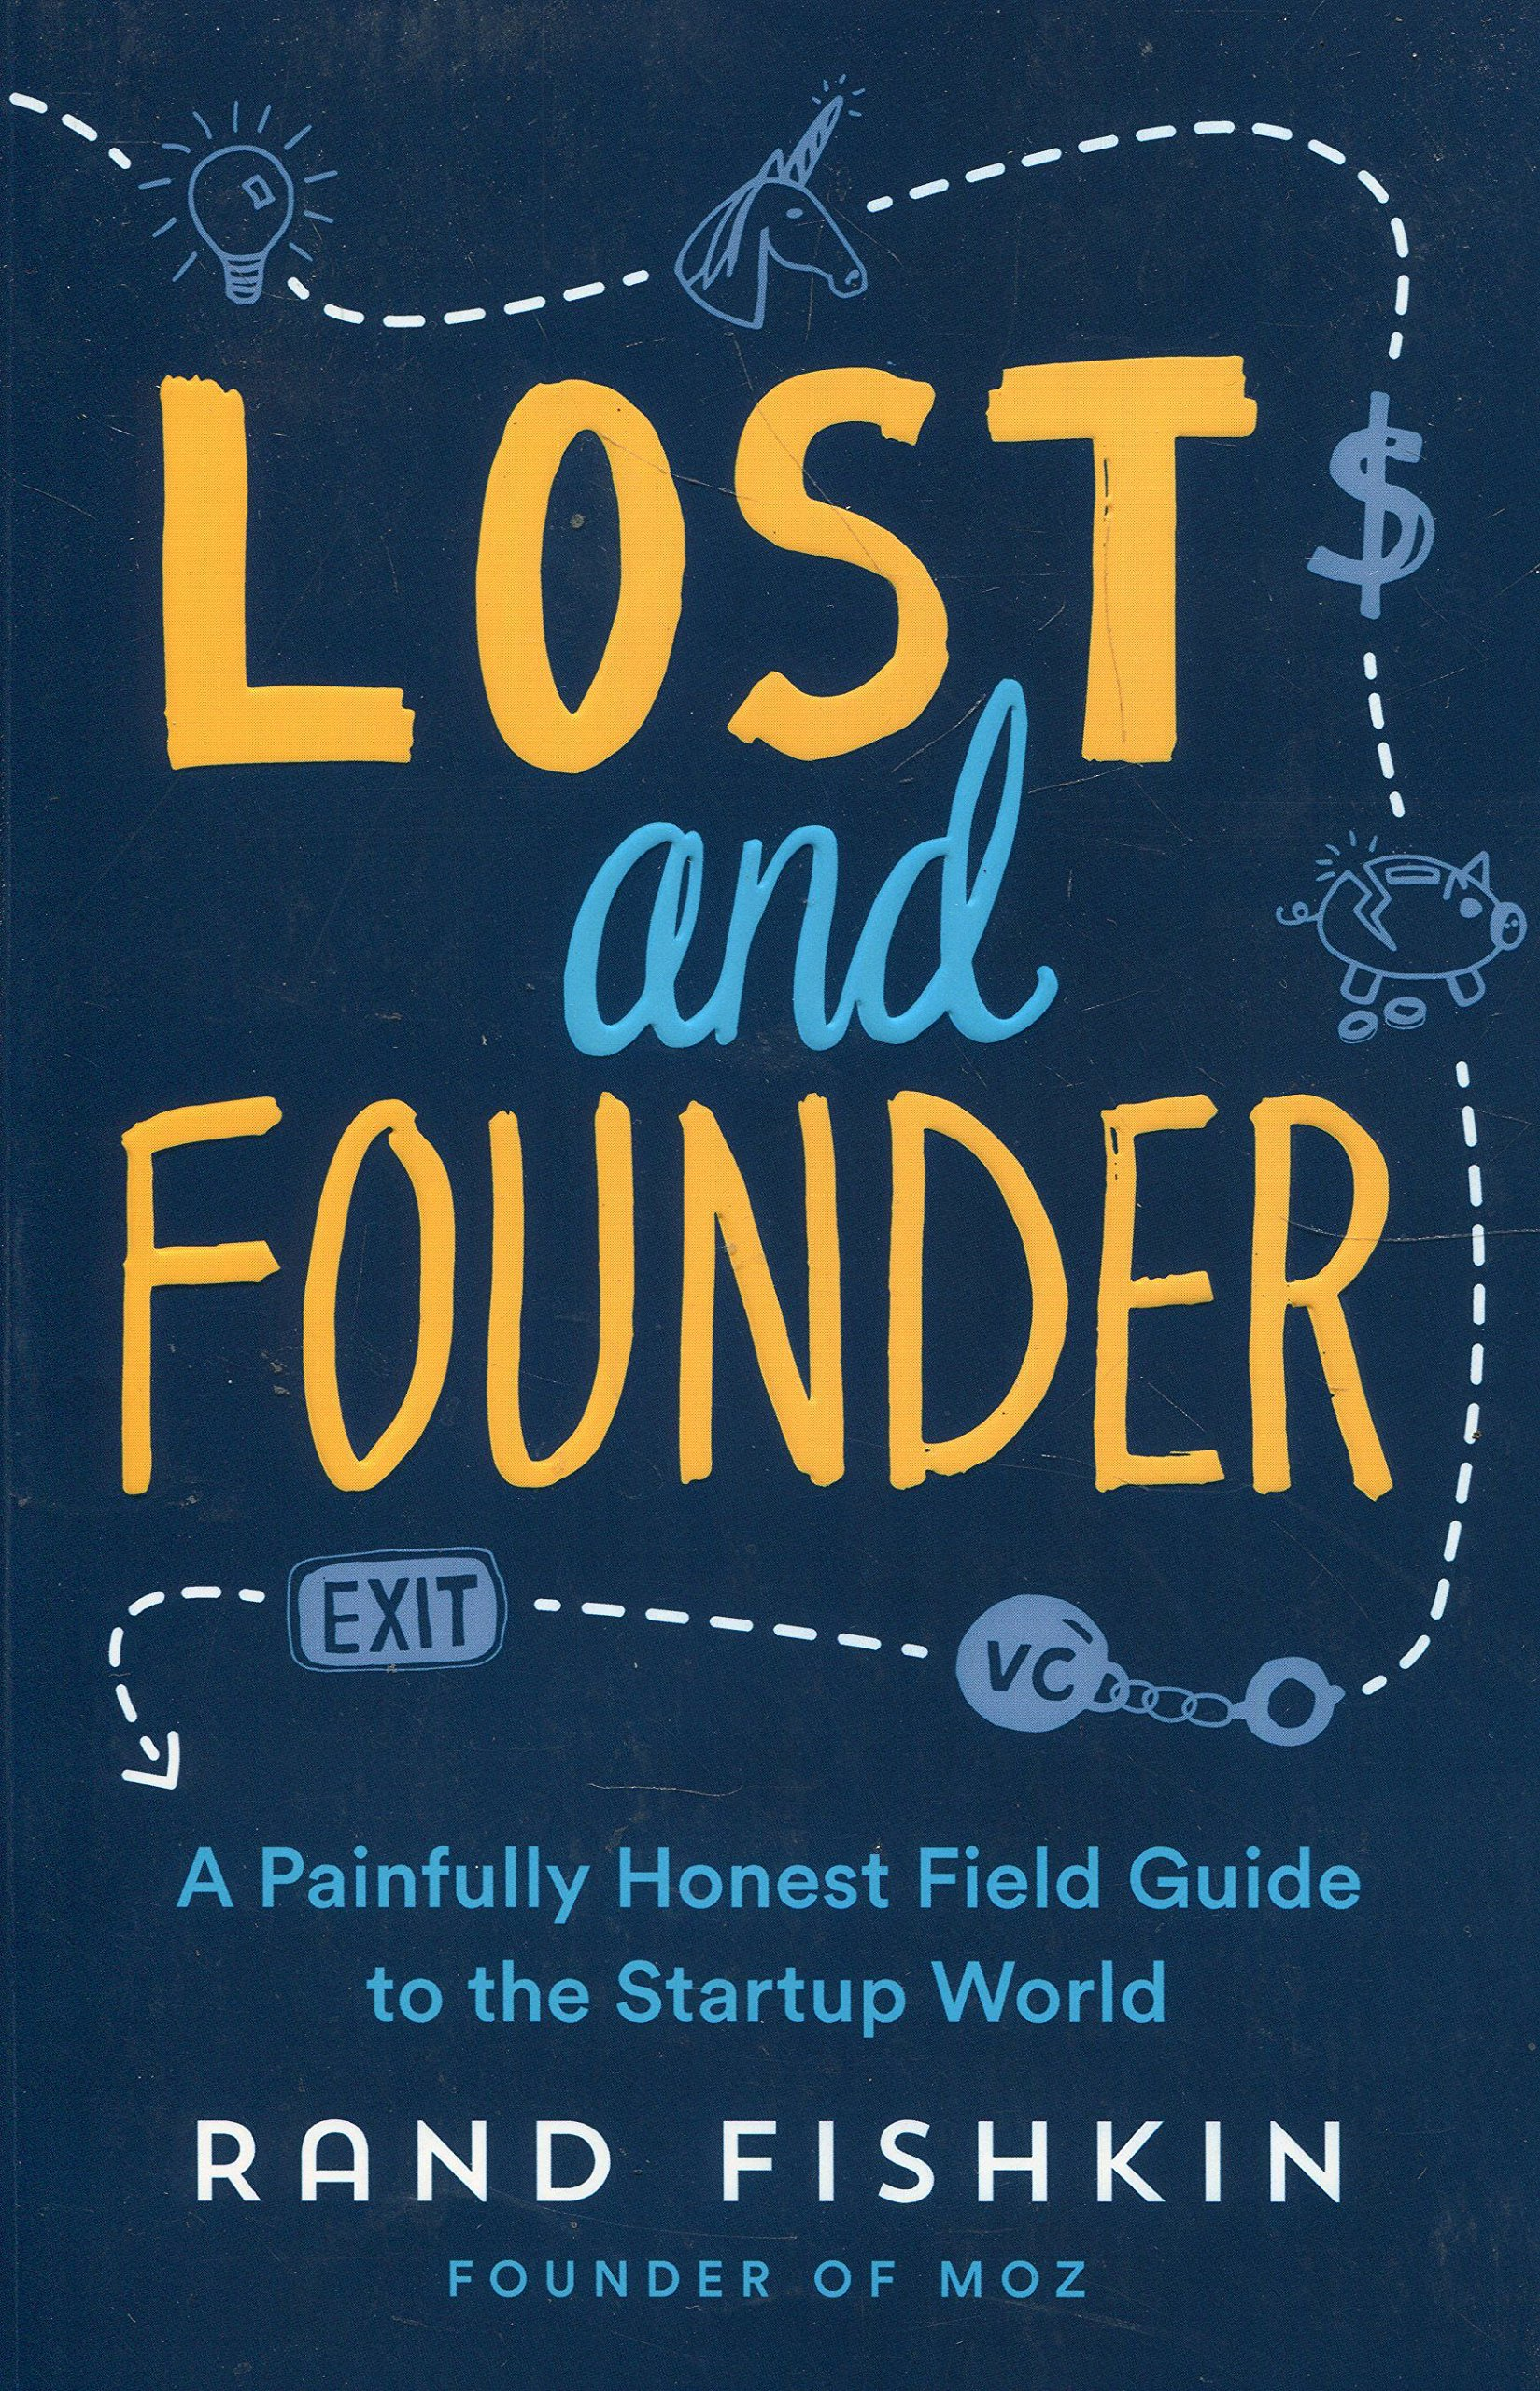 Image OfLost And Founder: A Painfully Honest Field Guide To The Startup World